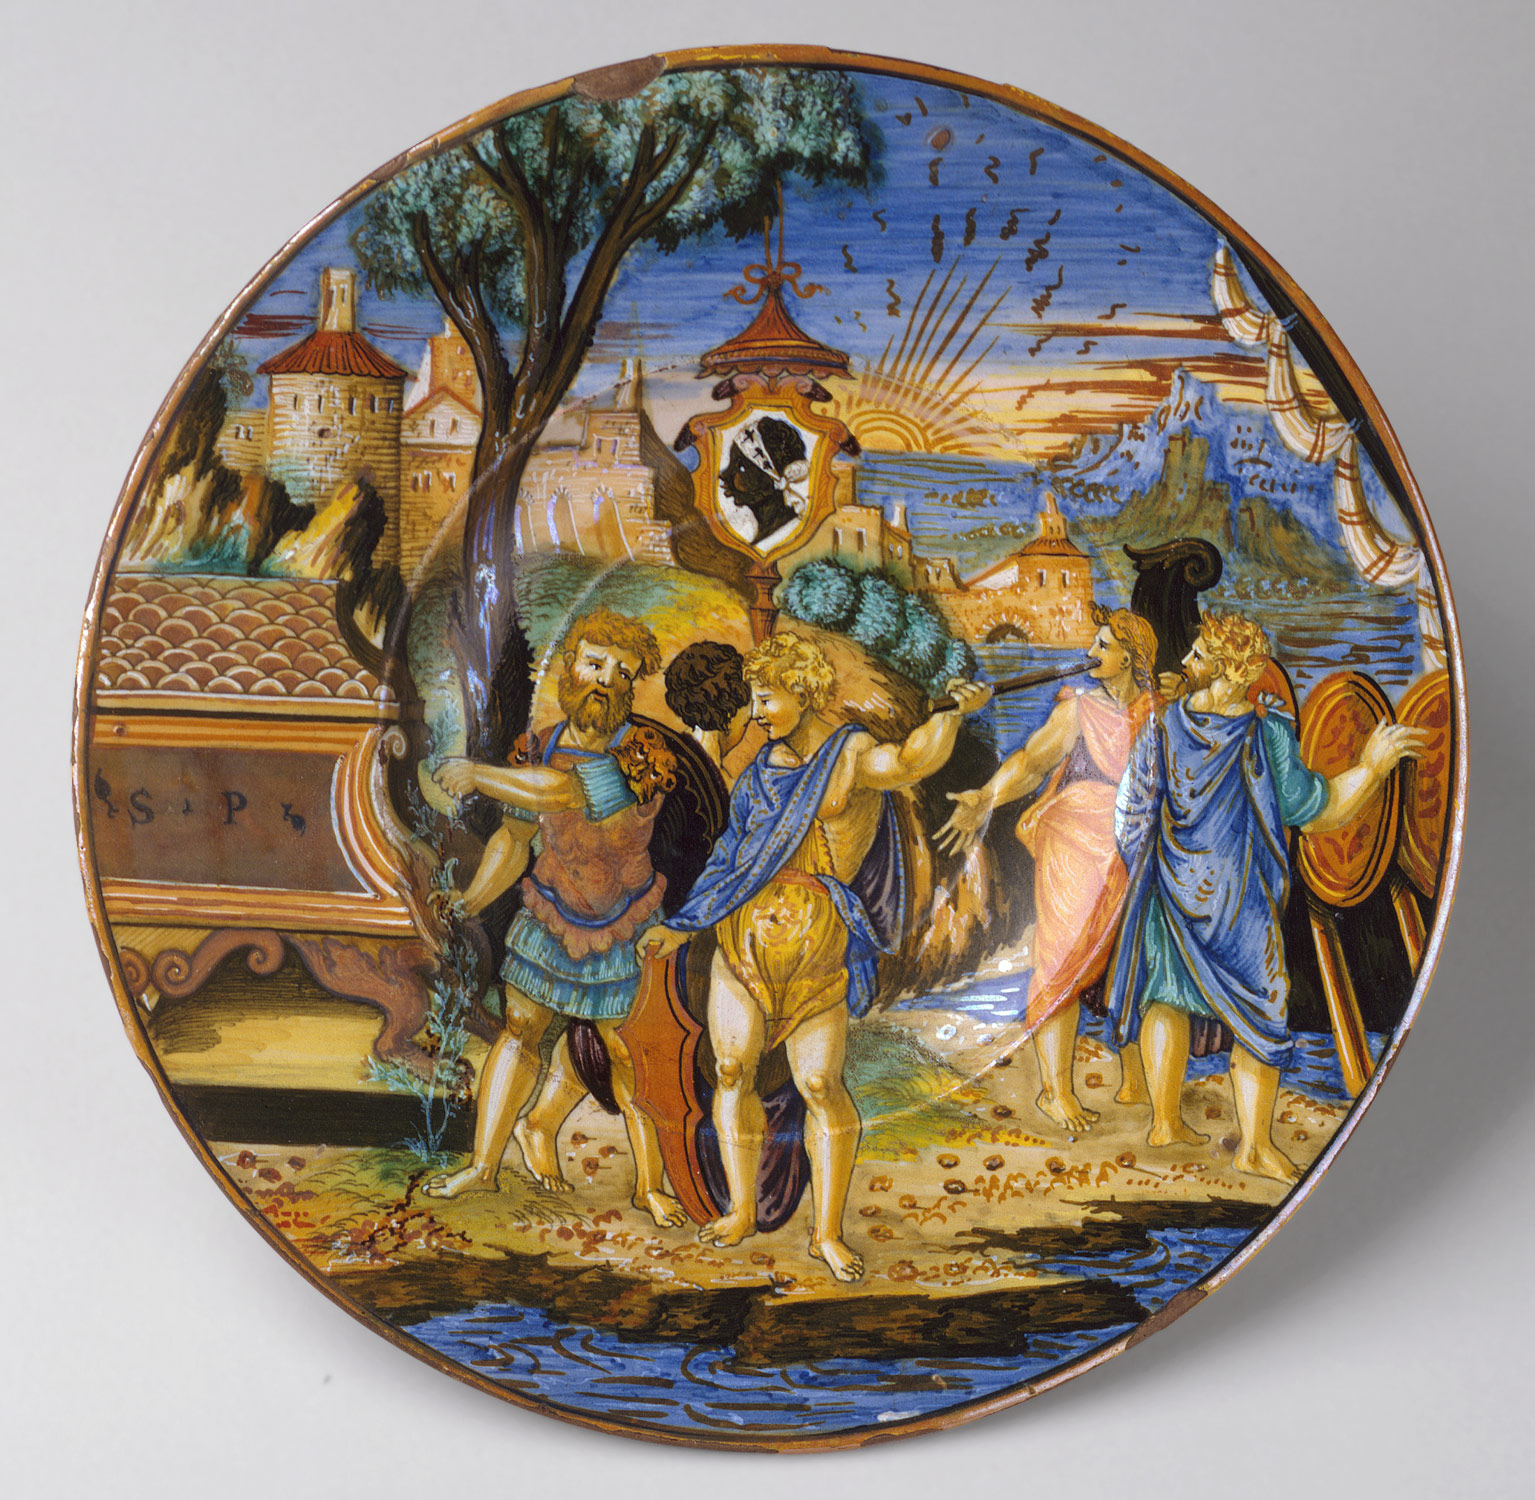 Plate (piatto): The story of Aeneas